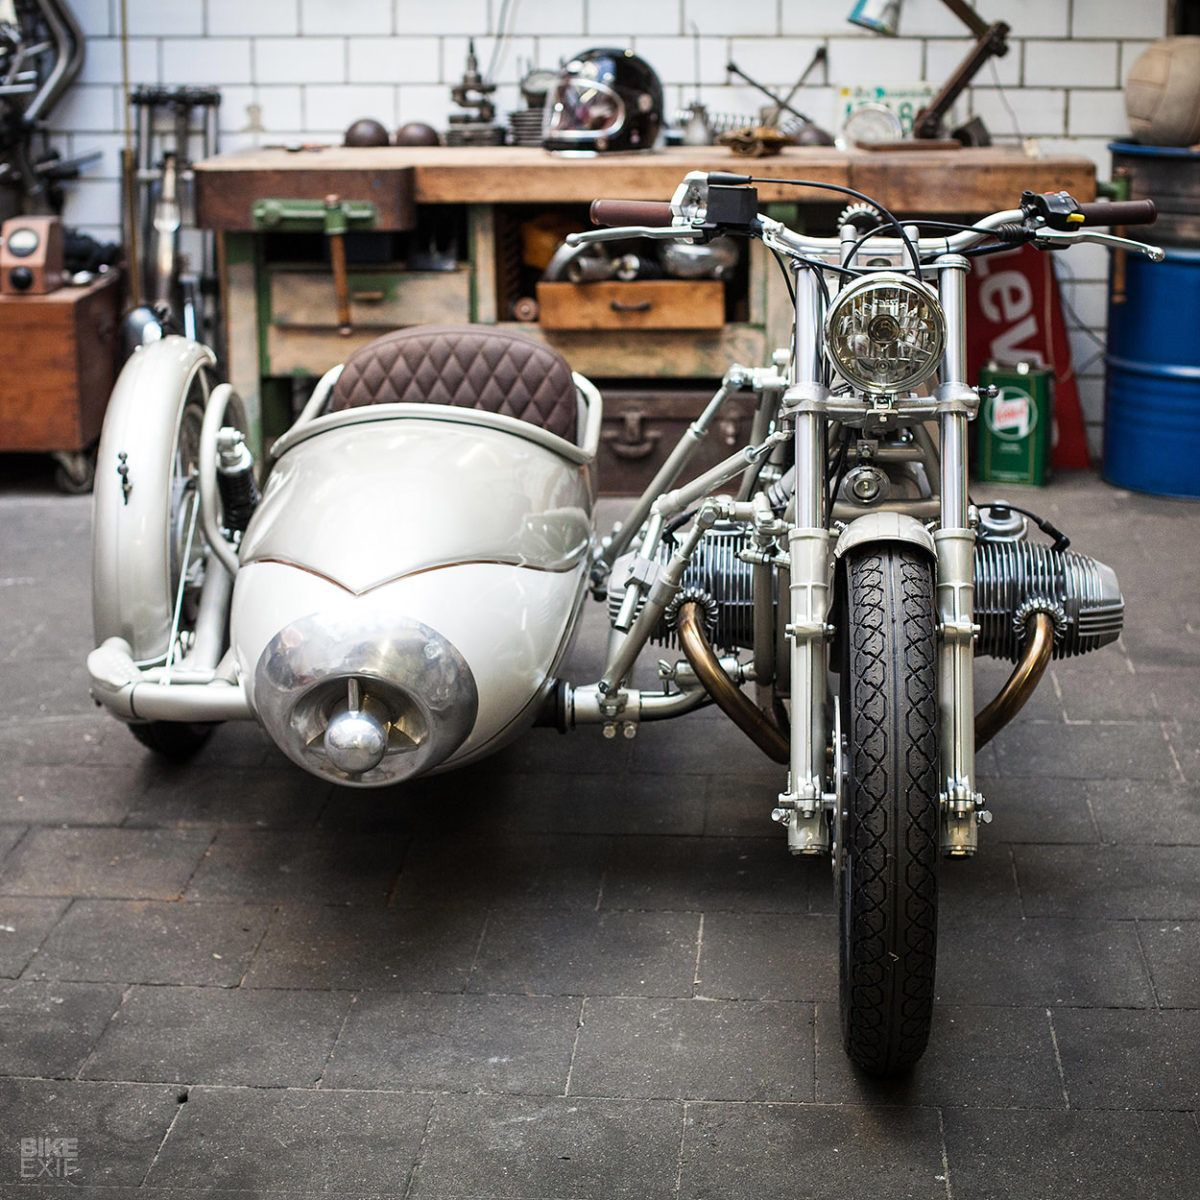 Sidecar: A classic cocktail from Kingston Custom | BMW cafe